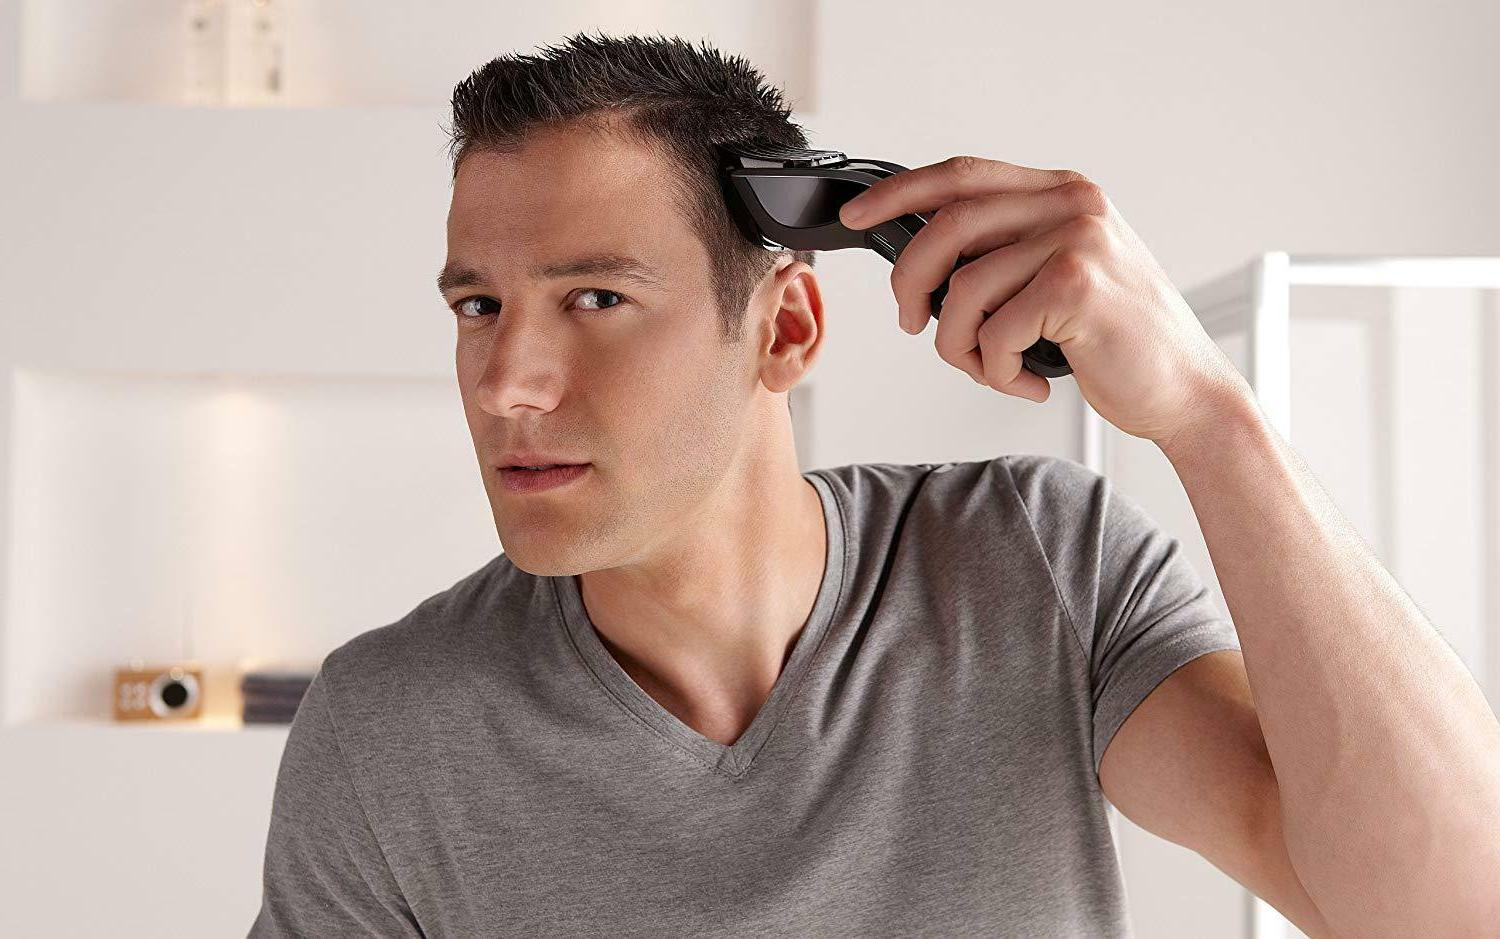 Hair Cutting Cordless Safe Care Norelco